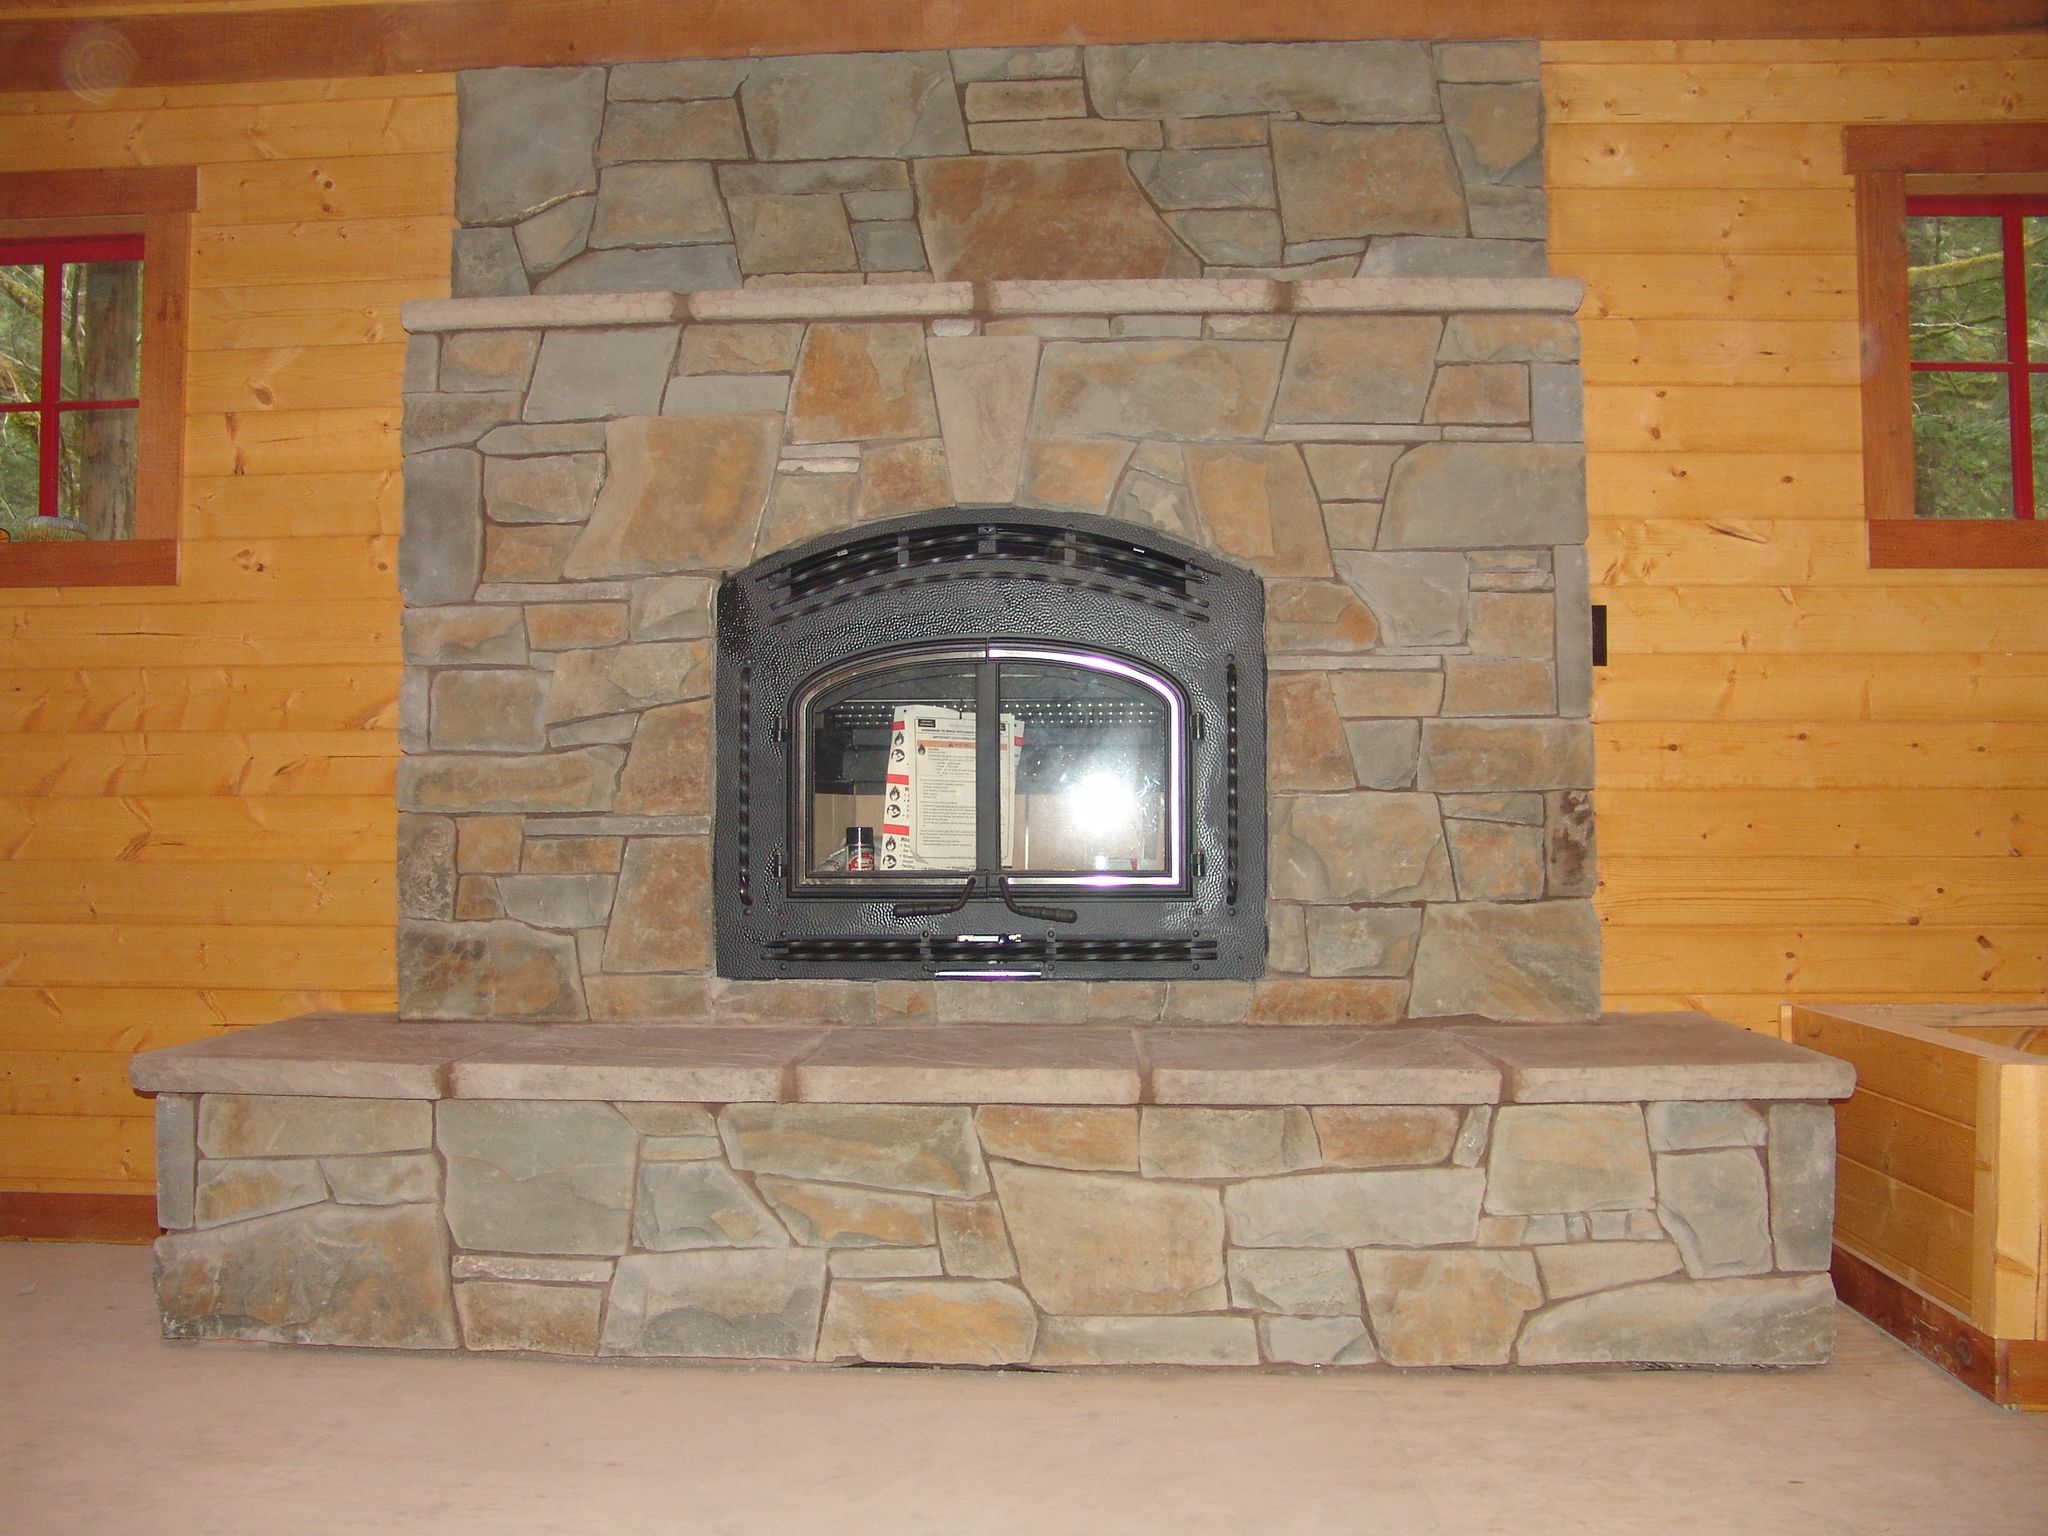 Natural Stone Cabin New Construction Wood Burning Raised Hearth Stone Slab Hearth Slab Rhododendron Indoor Fireplace Fireplace Traditional Living Room